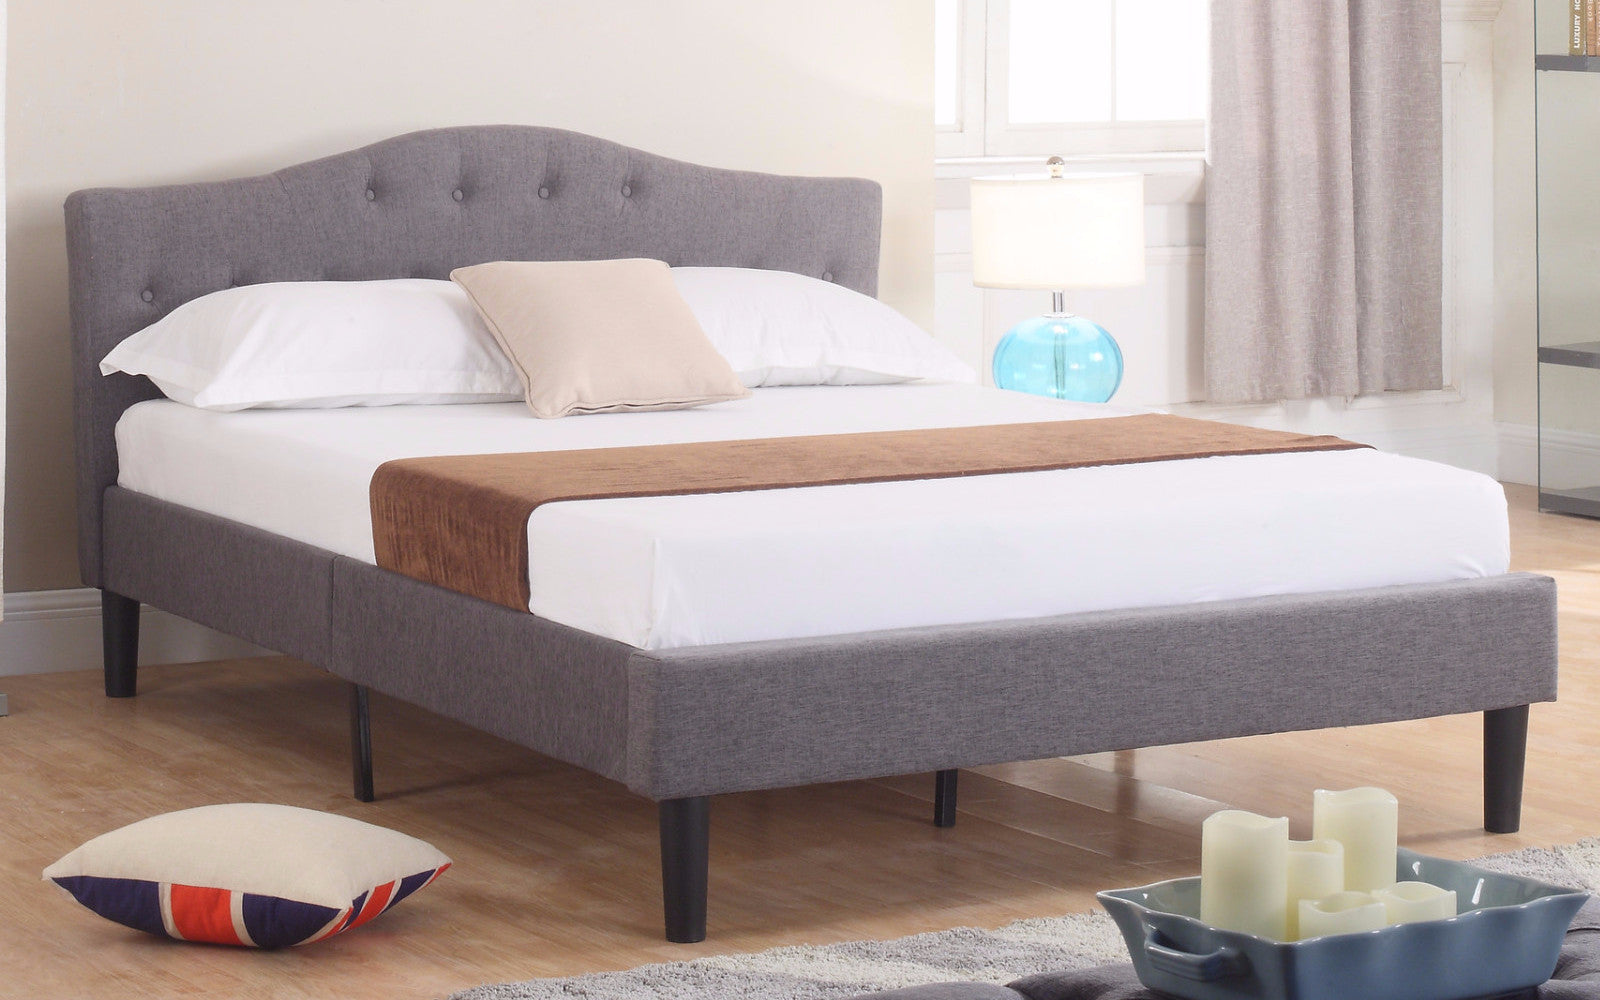 Fabric Bed Gray Image